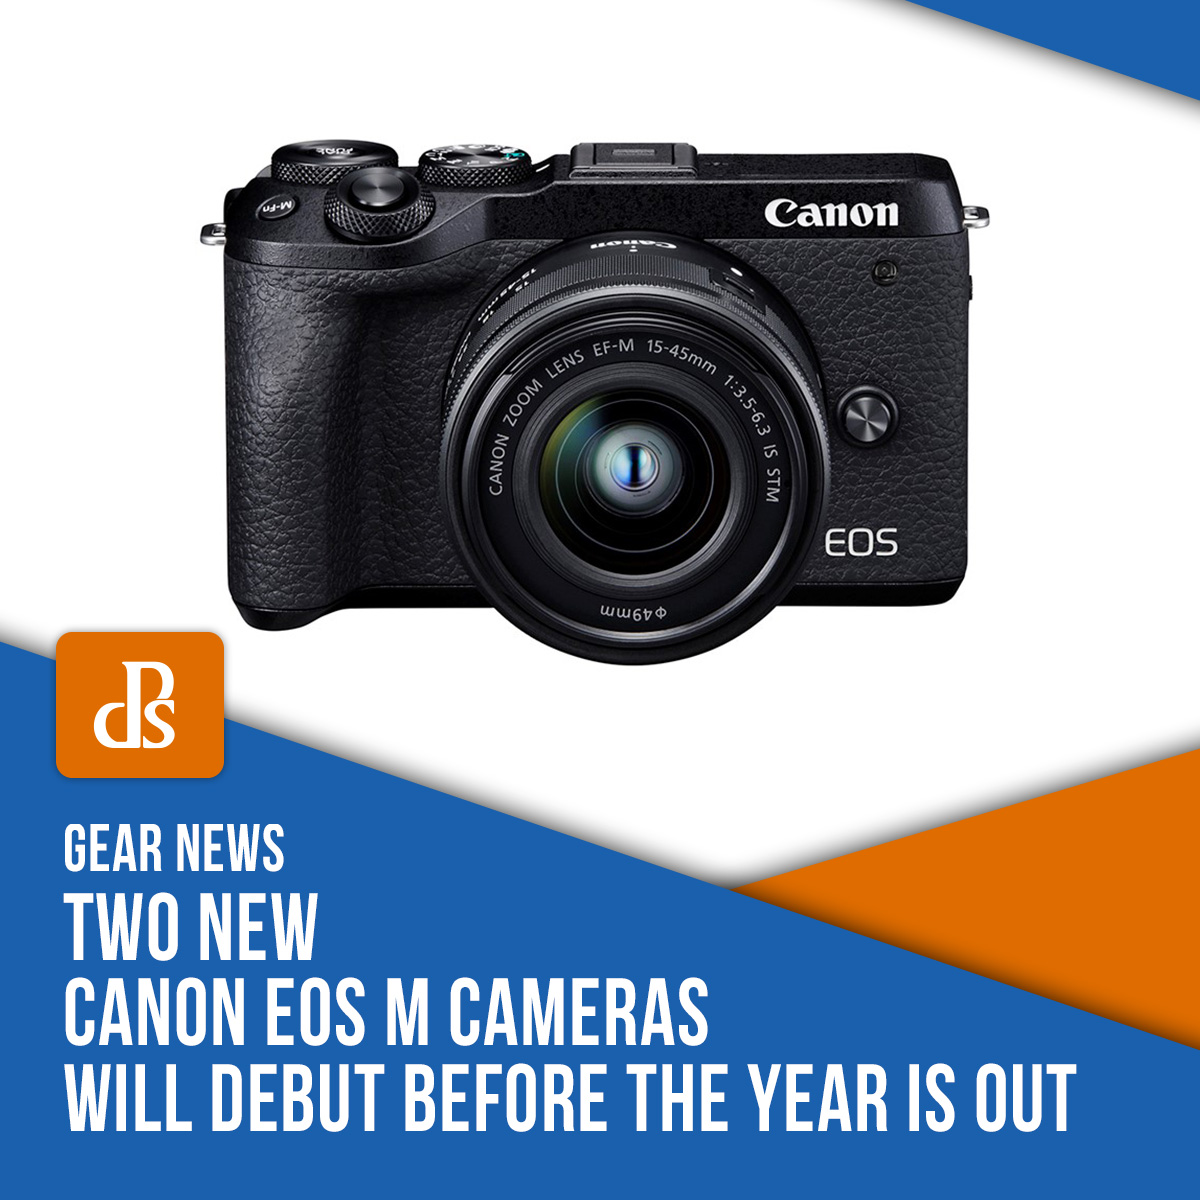 https://i1.wp.com/digital-photography-school.com/wp-content/uploads/2020/04/dps-gear-news-new-canon-eos-m-cameras.jpg?ssl=1